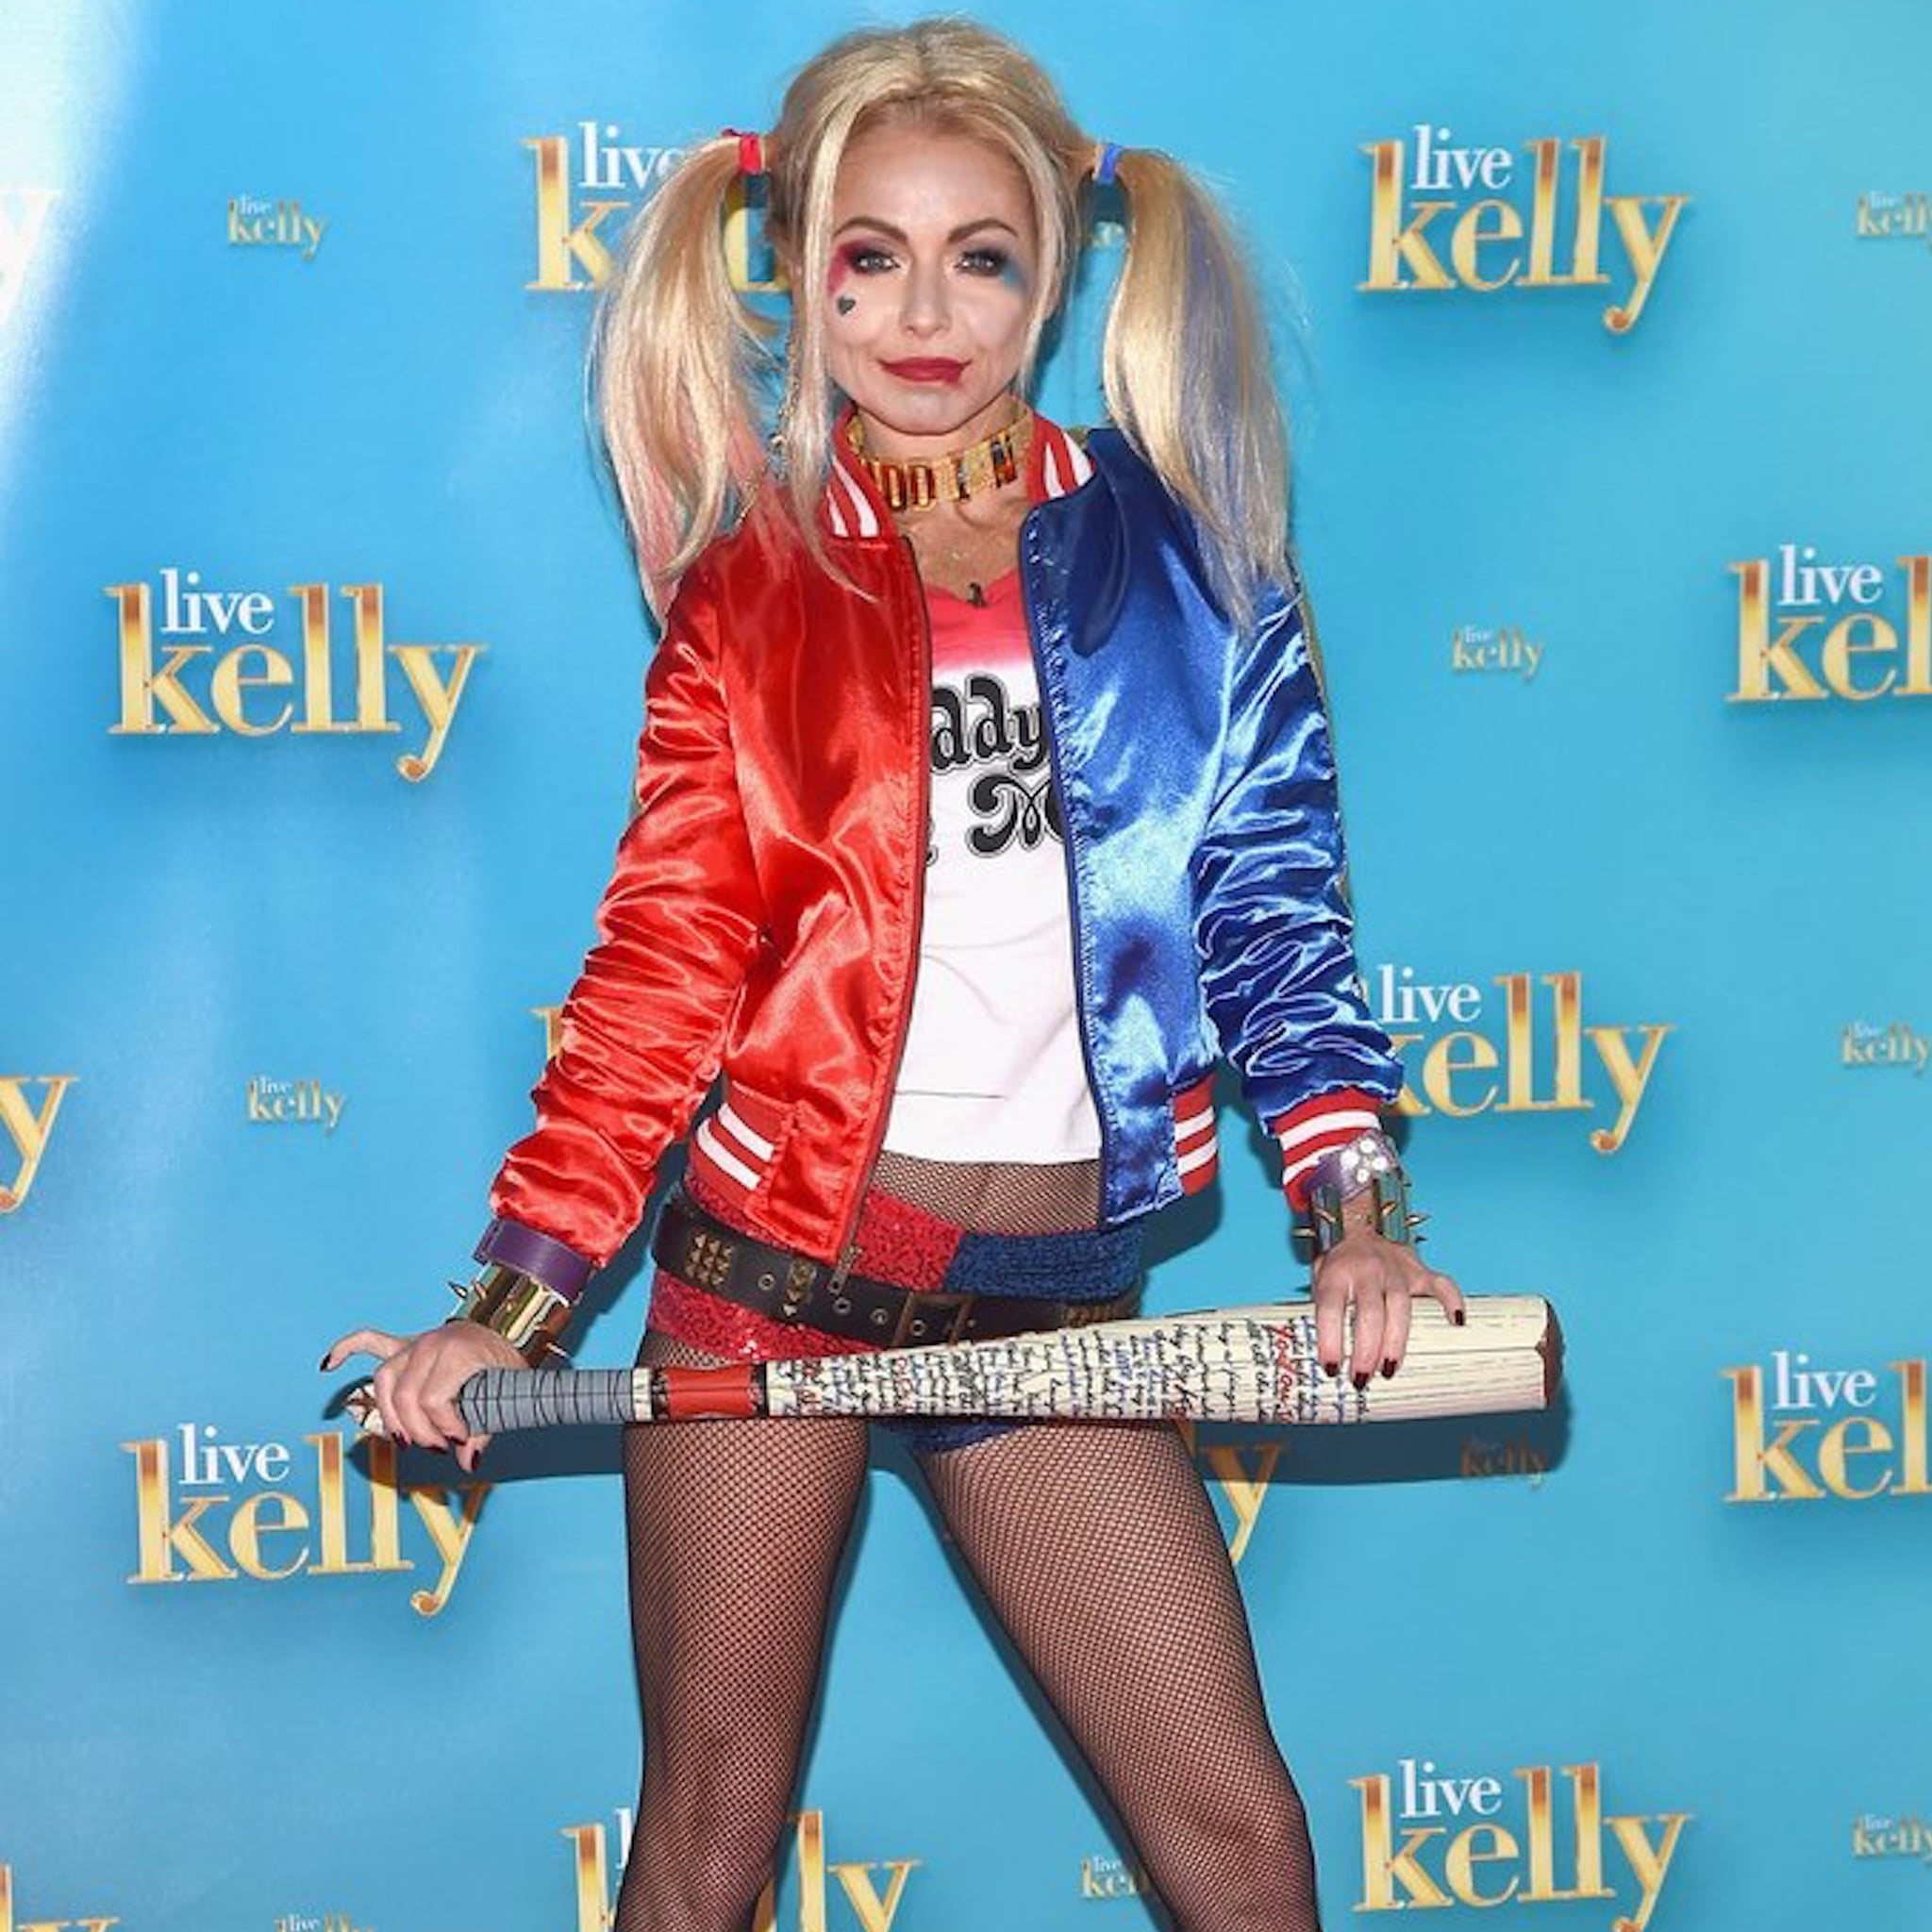 Kelly Ripa 2020 Halloween Outfit Kelly Ripa's Halloween Costumes | POPSUGAR Celebrity